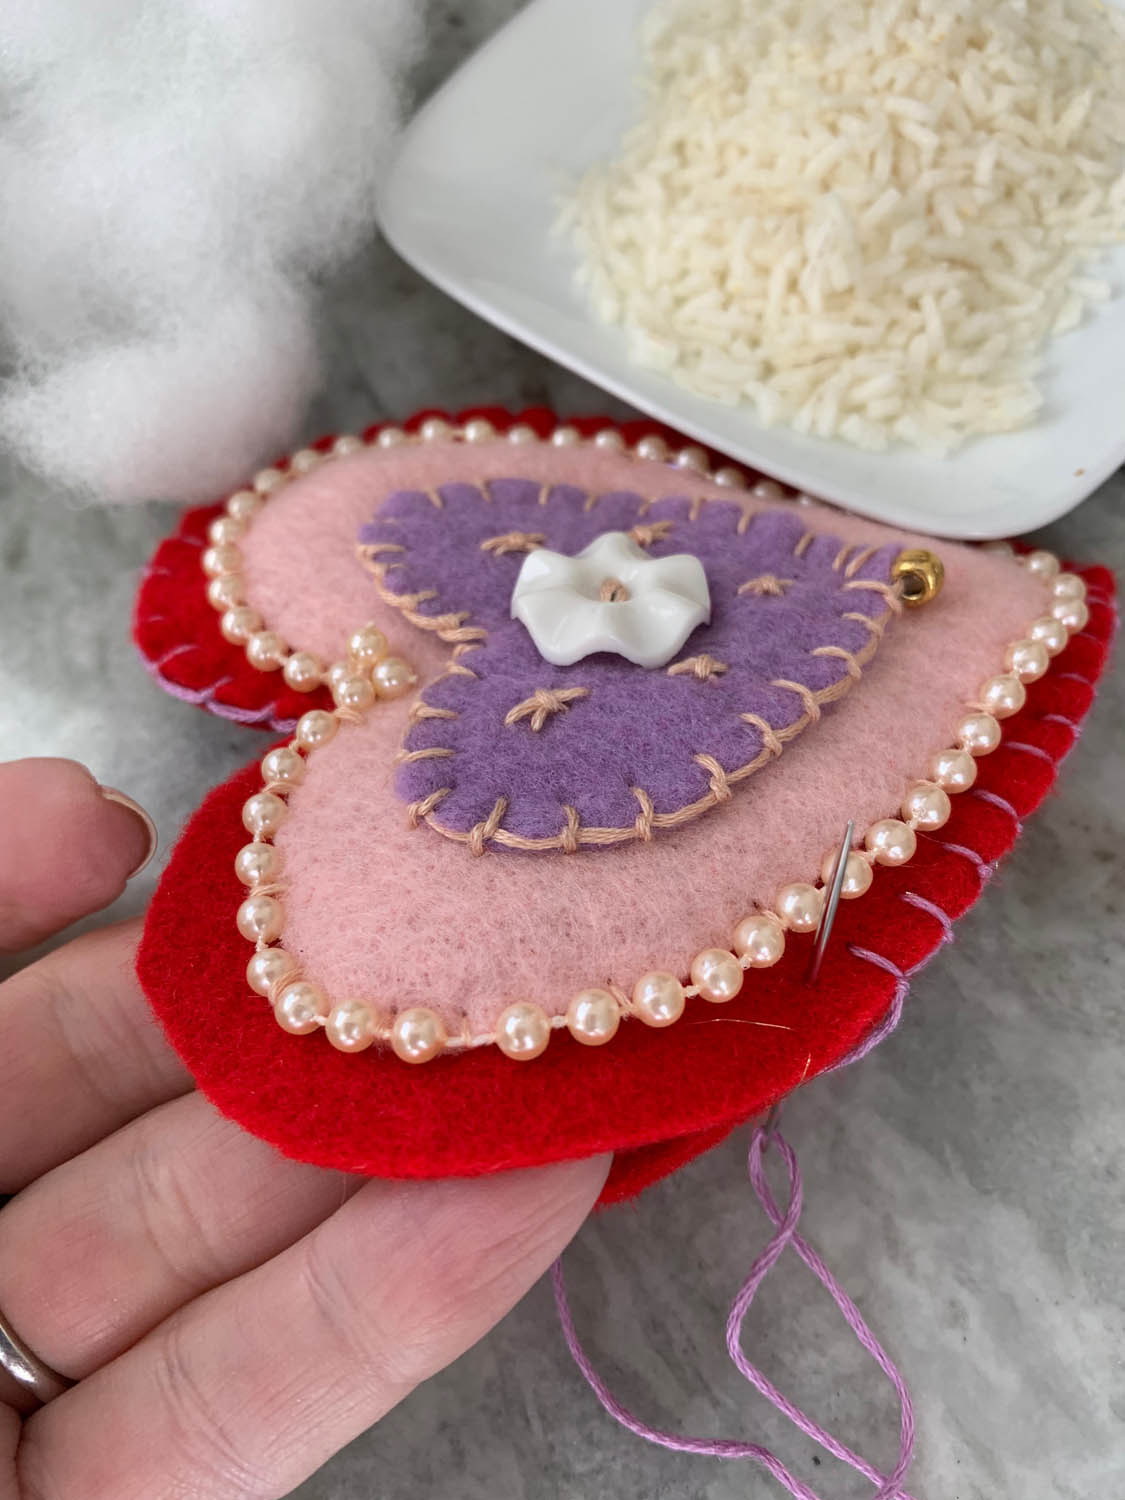 purple pink and red felt heart with opening for stuffing with fiberfill and rice